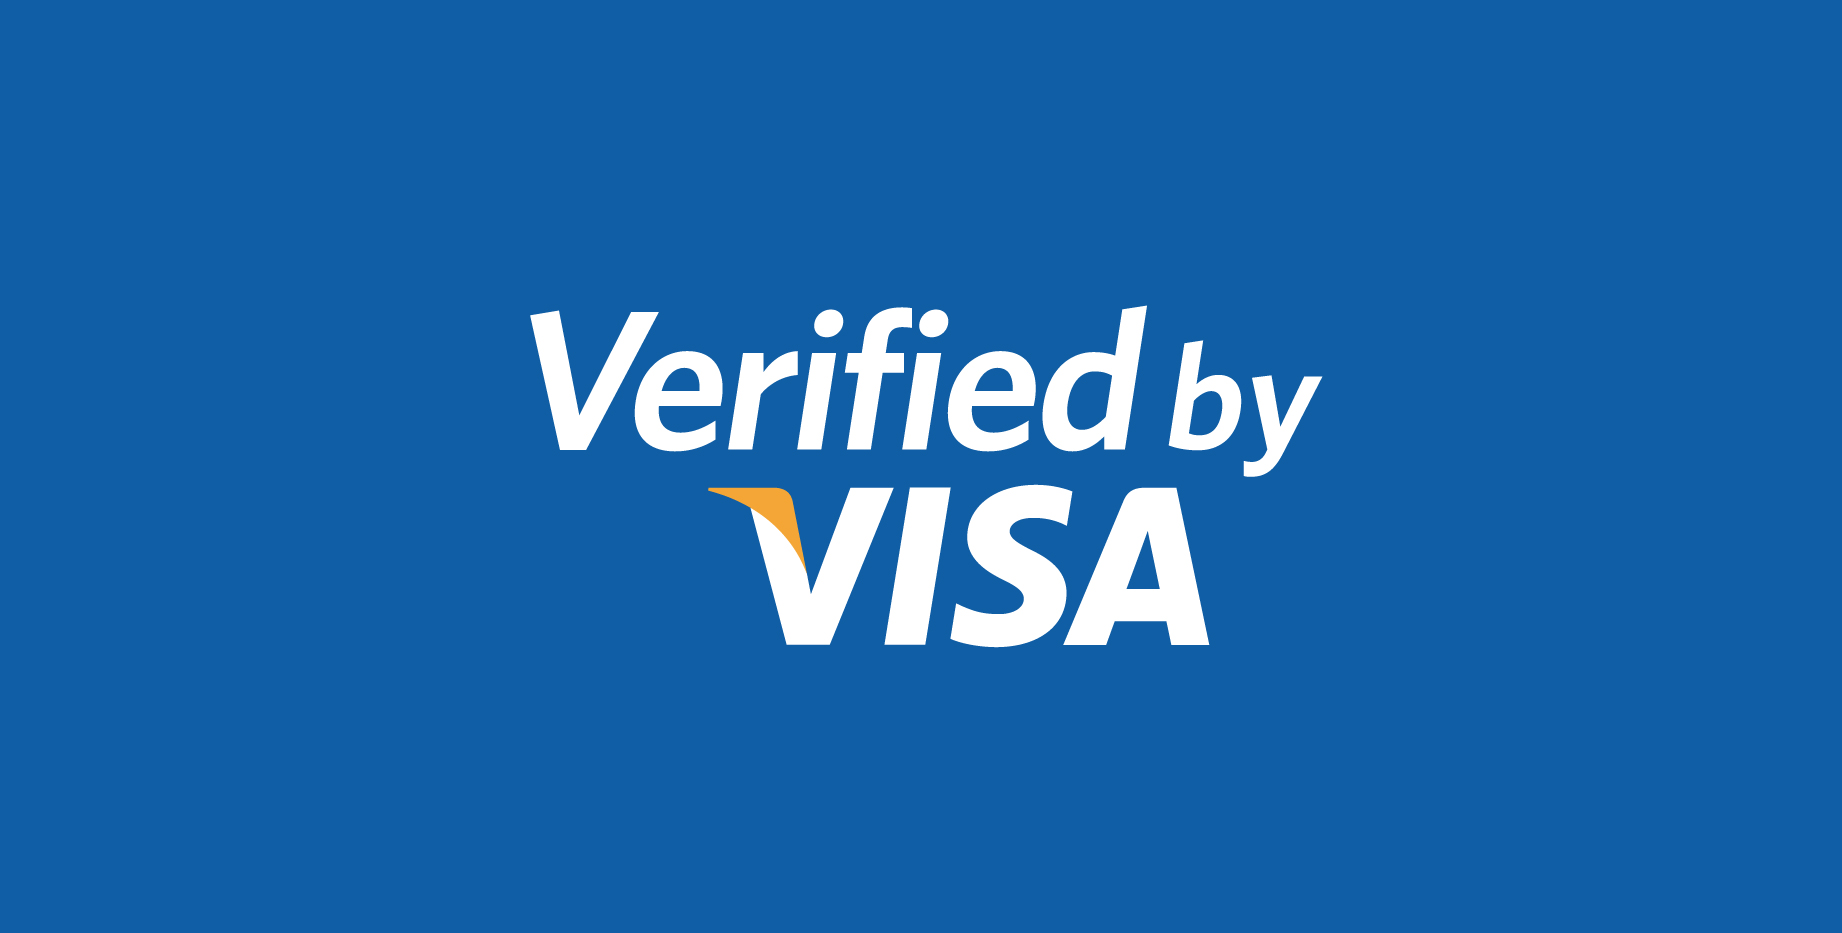 LOGO VERIFIED BY VISA.jpg